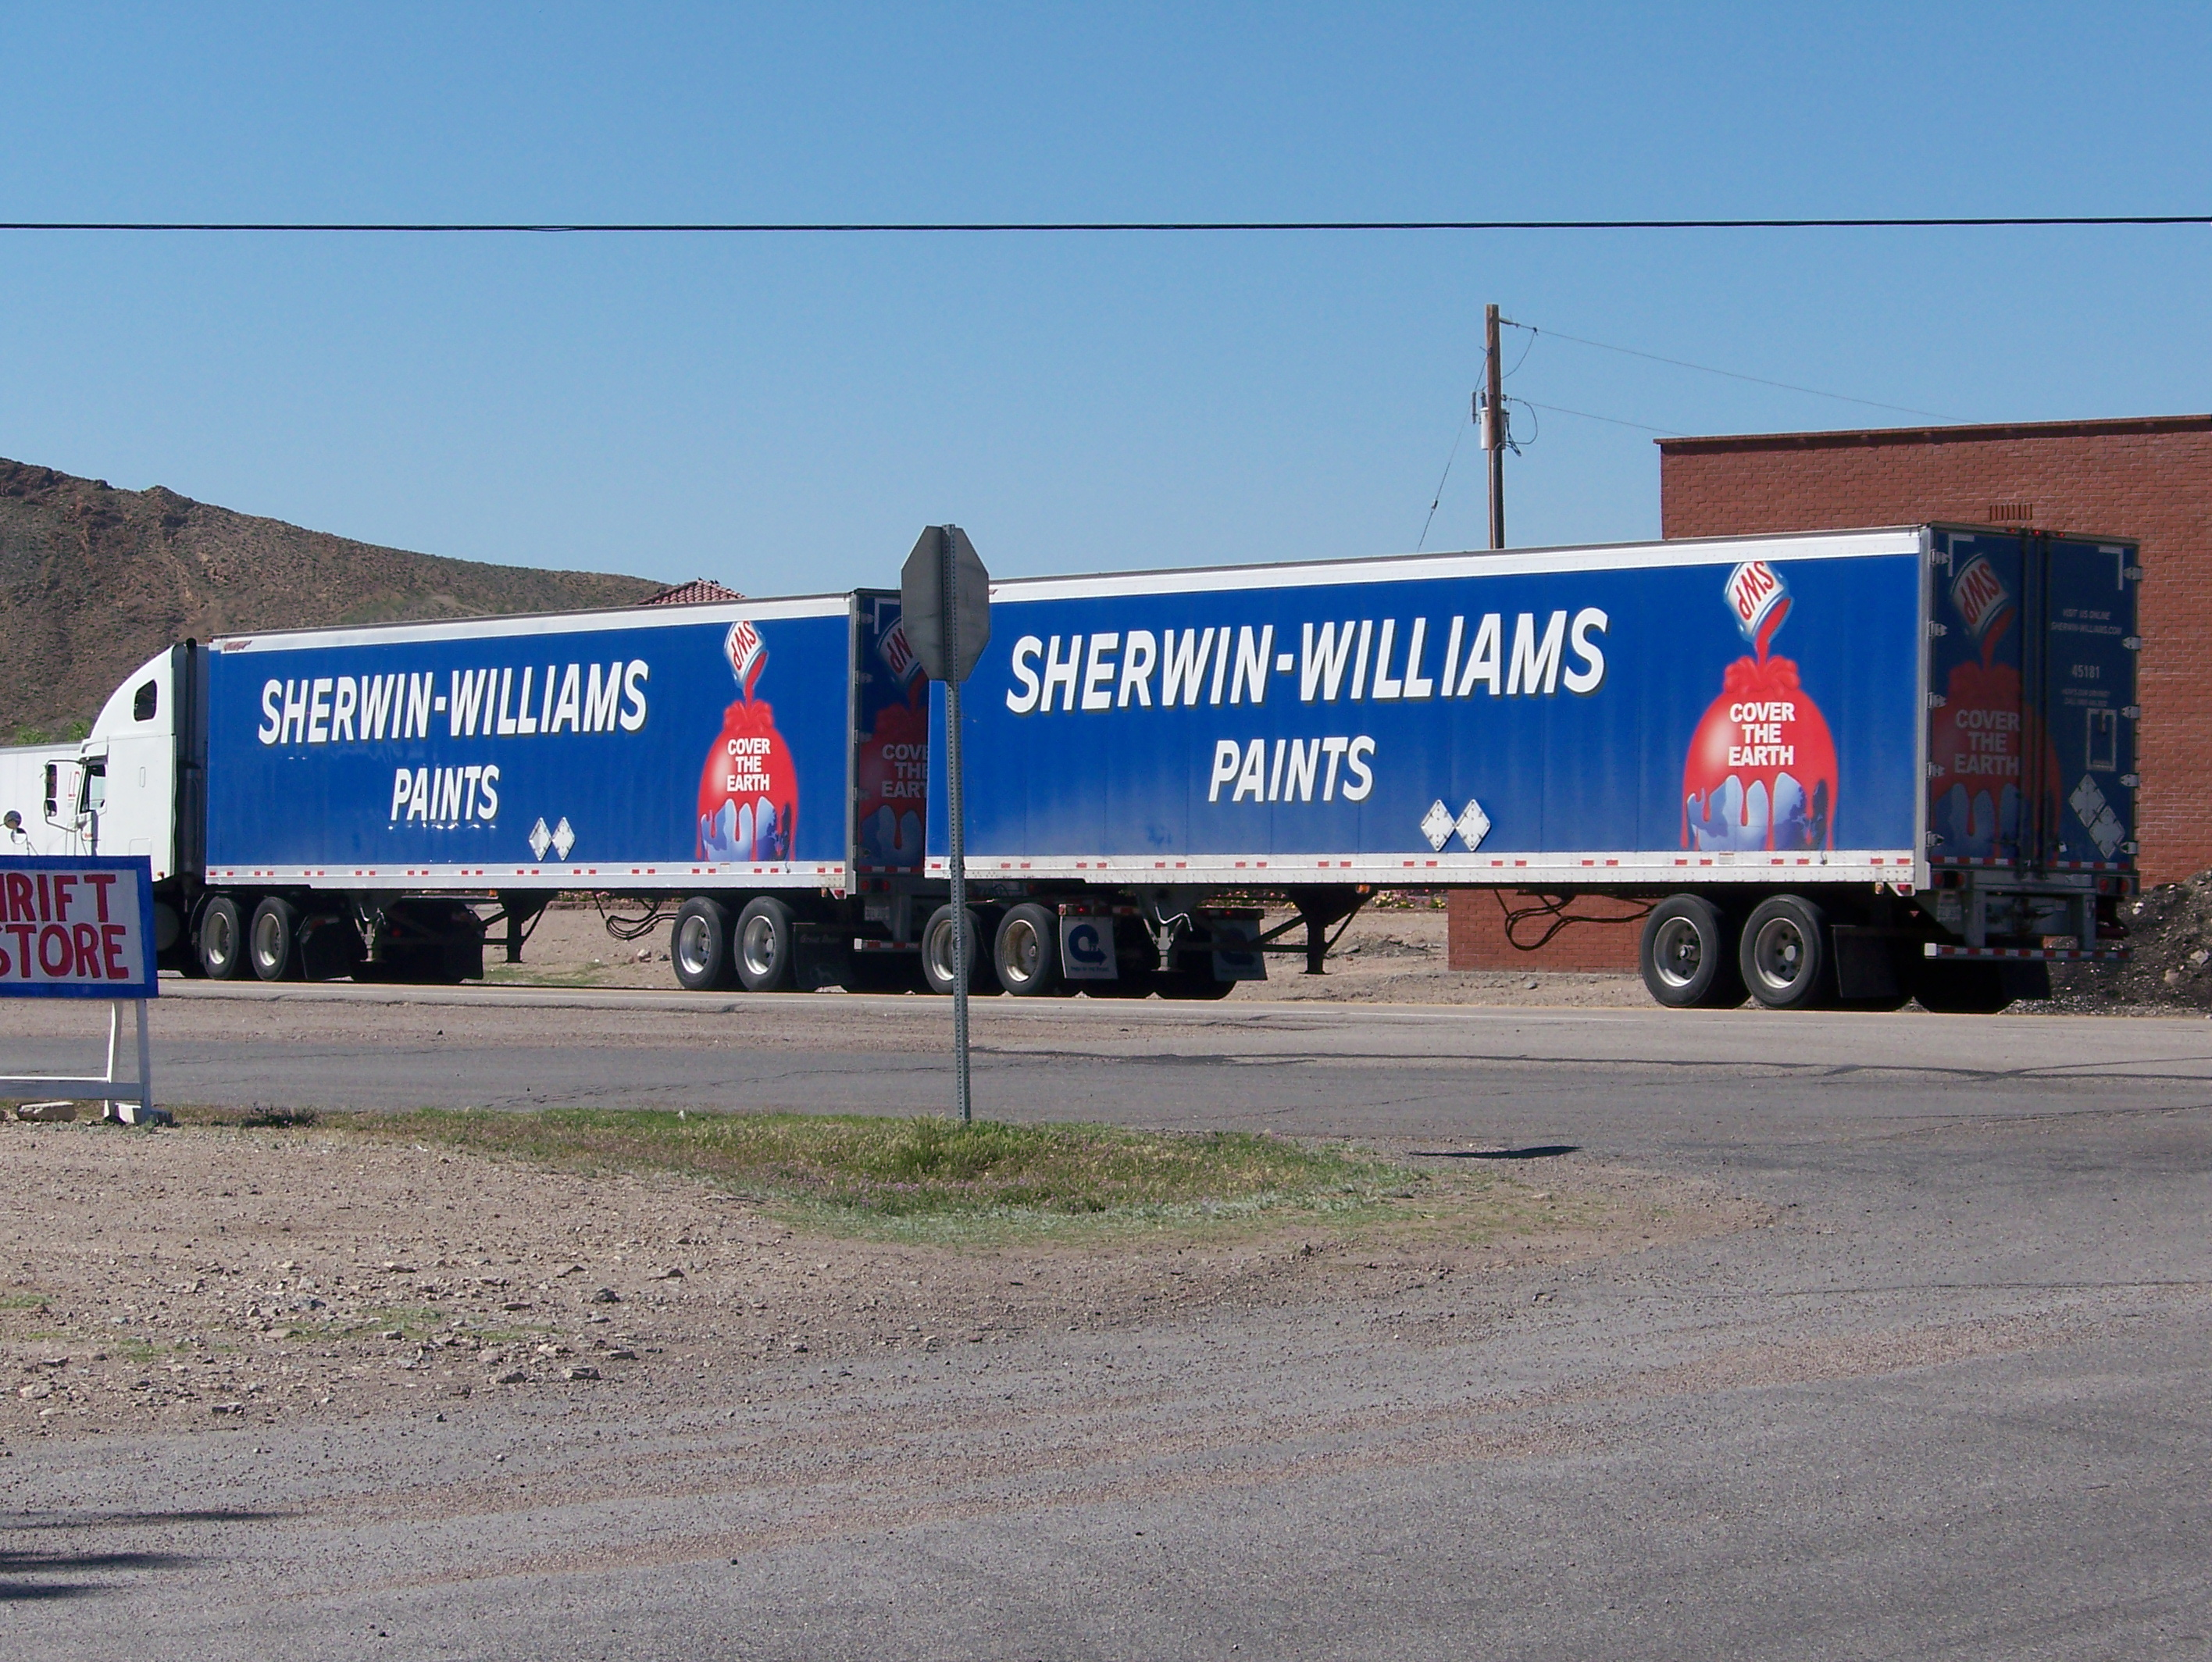 file sherwin williams paints truck on us 95 2 jpg wikimedia commons. Black Bedroom Furniture Sets. Home Design Ideas